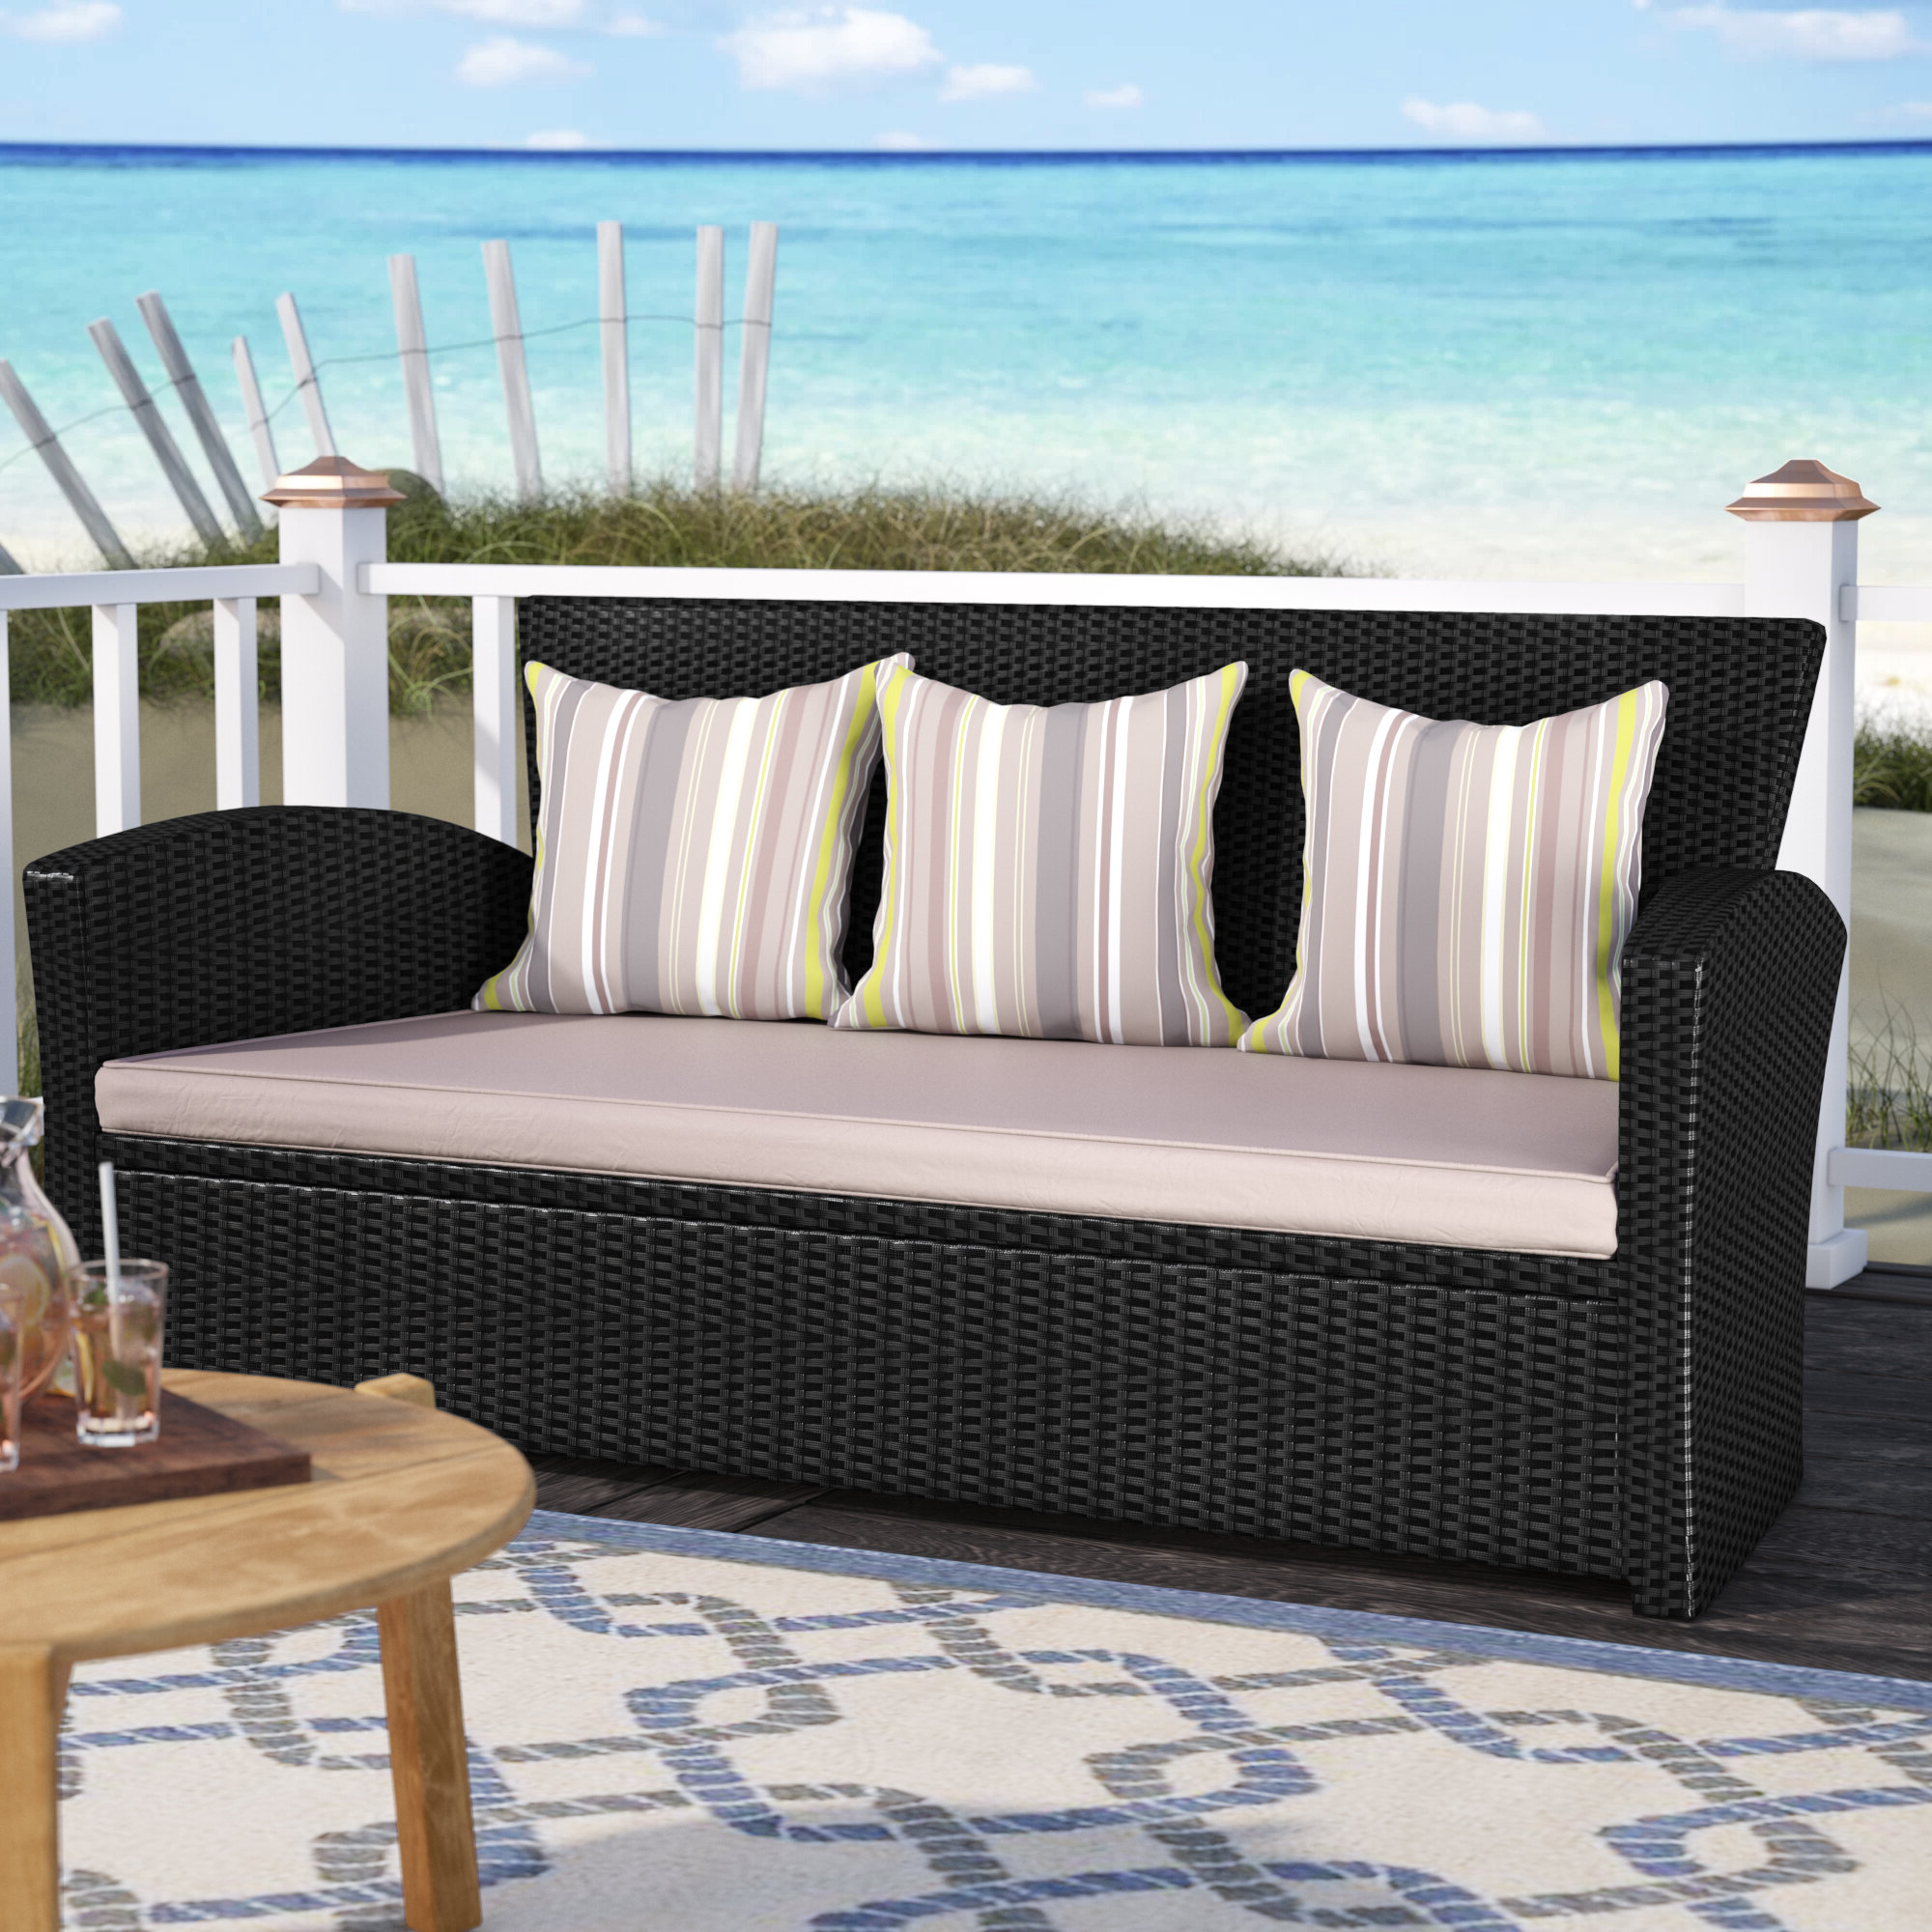 Valetta Patio Sofa With Cushions Throughout Most Recently Released Loggins Patio Sofas With Cushions (View 9 of 20)